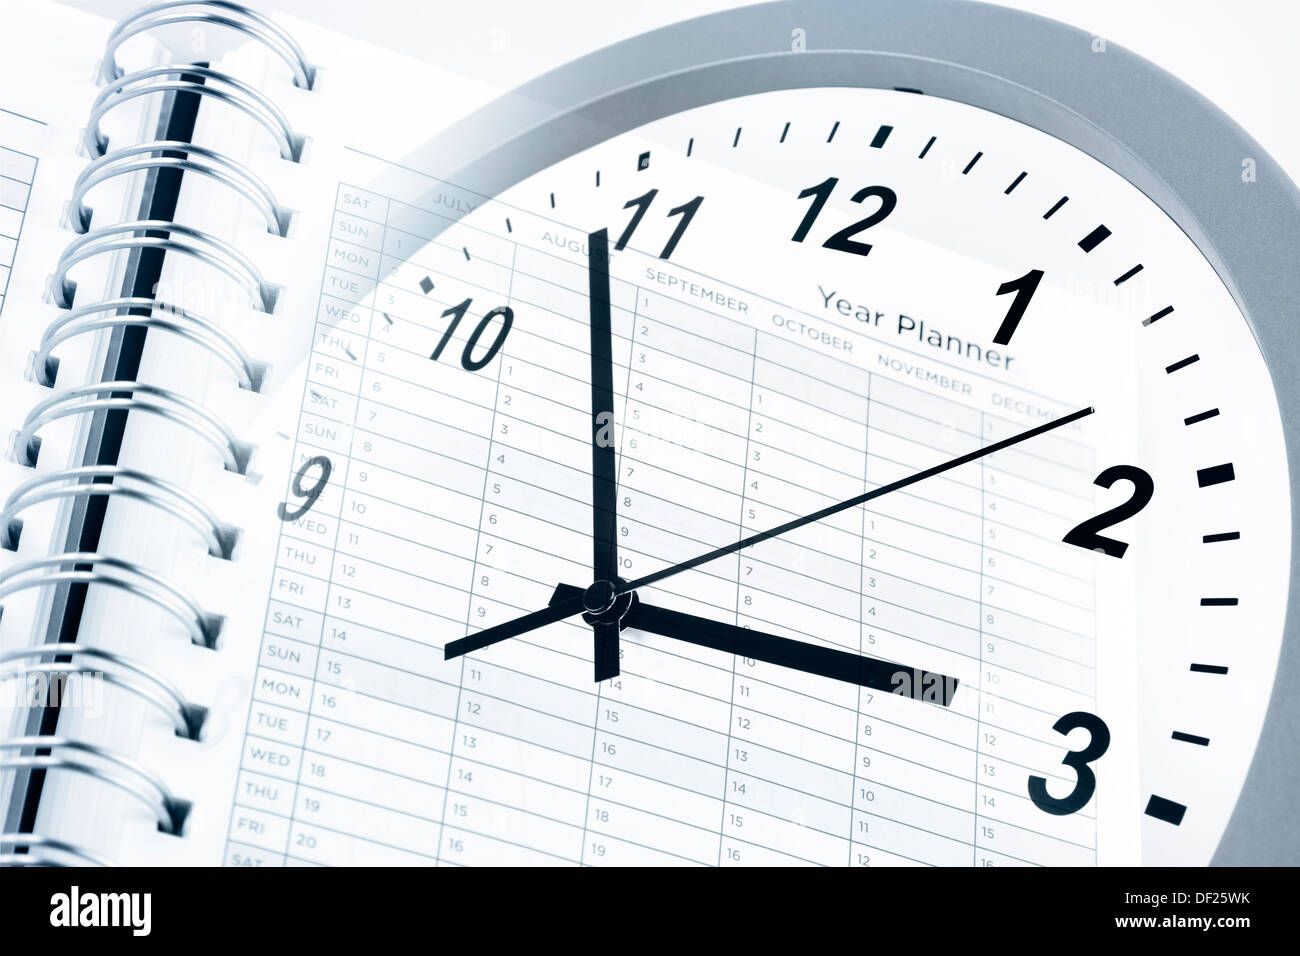 Clock face and year planner Stock Photo